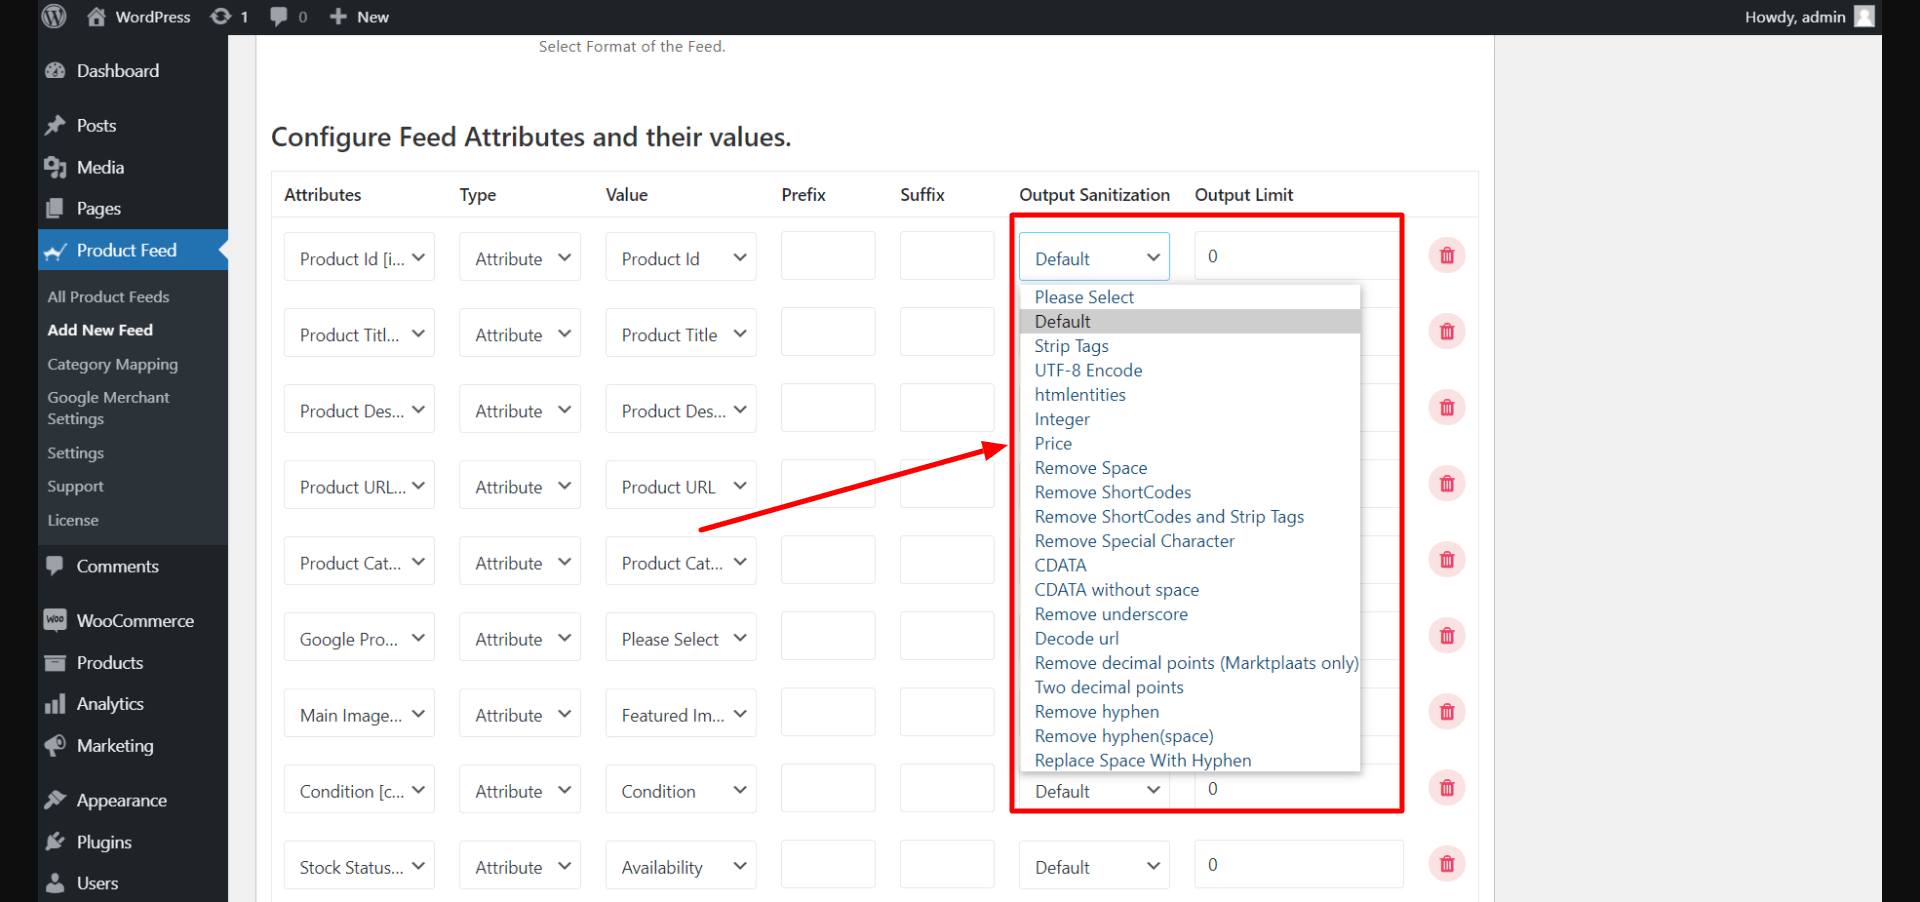 Product Feed Manager Output Sanitization Dropdown List